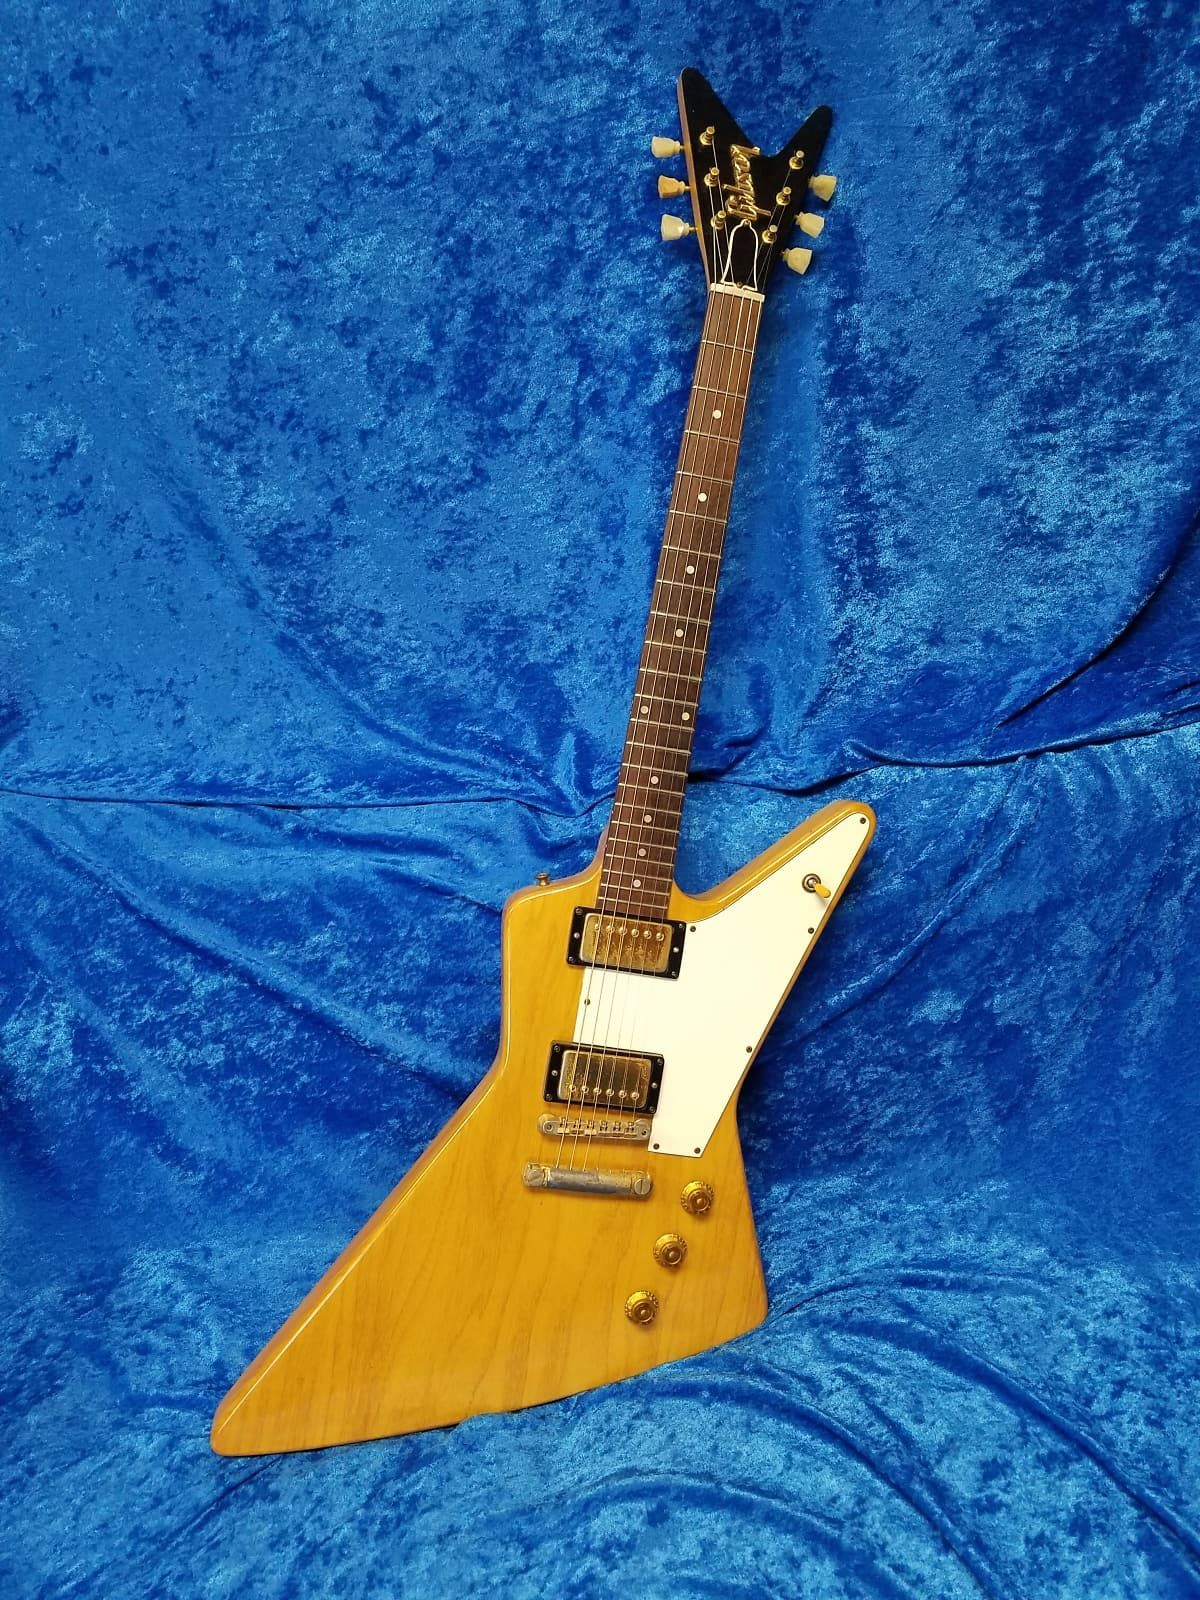 All Original Factory Leftover Parts Korina Explorereverybody Knows Need To Know The Of Electric Guitar History These Instruments And Gibson Guitars In General